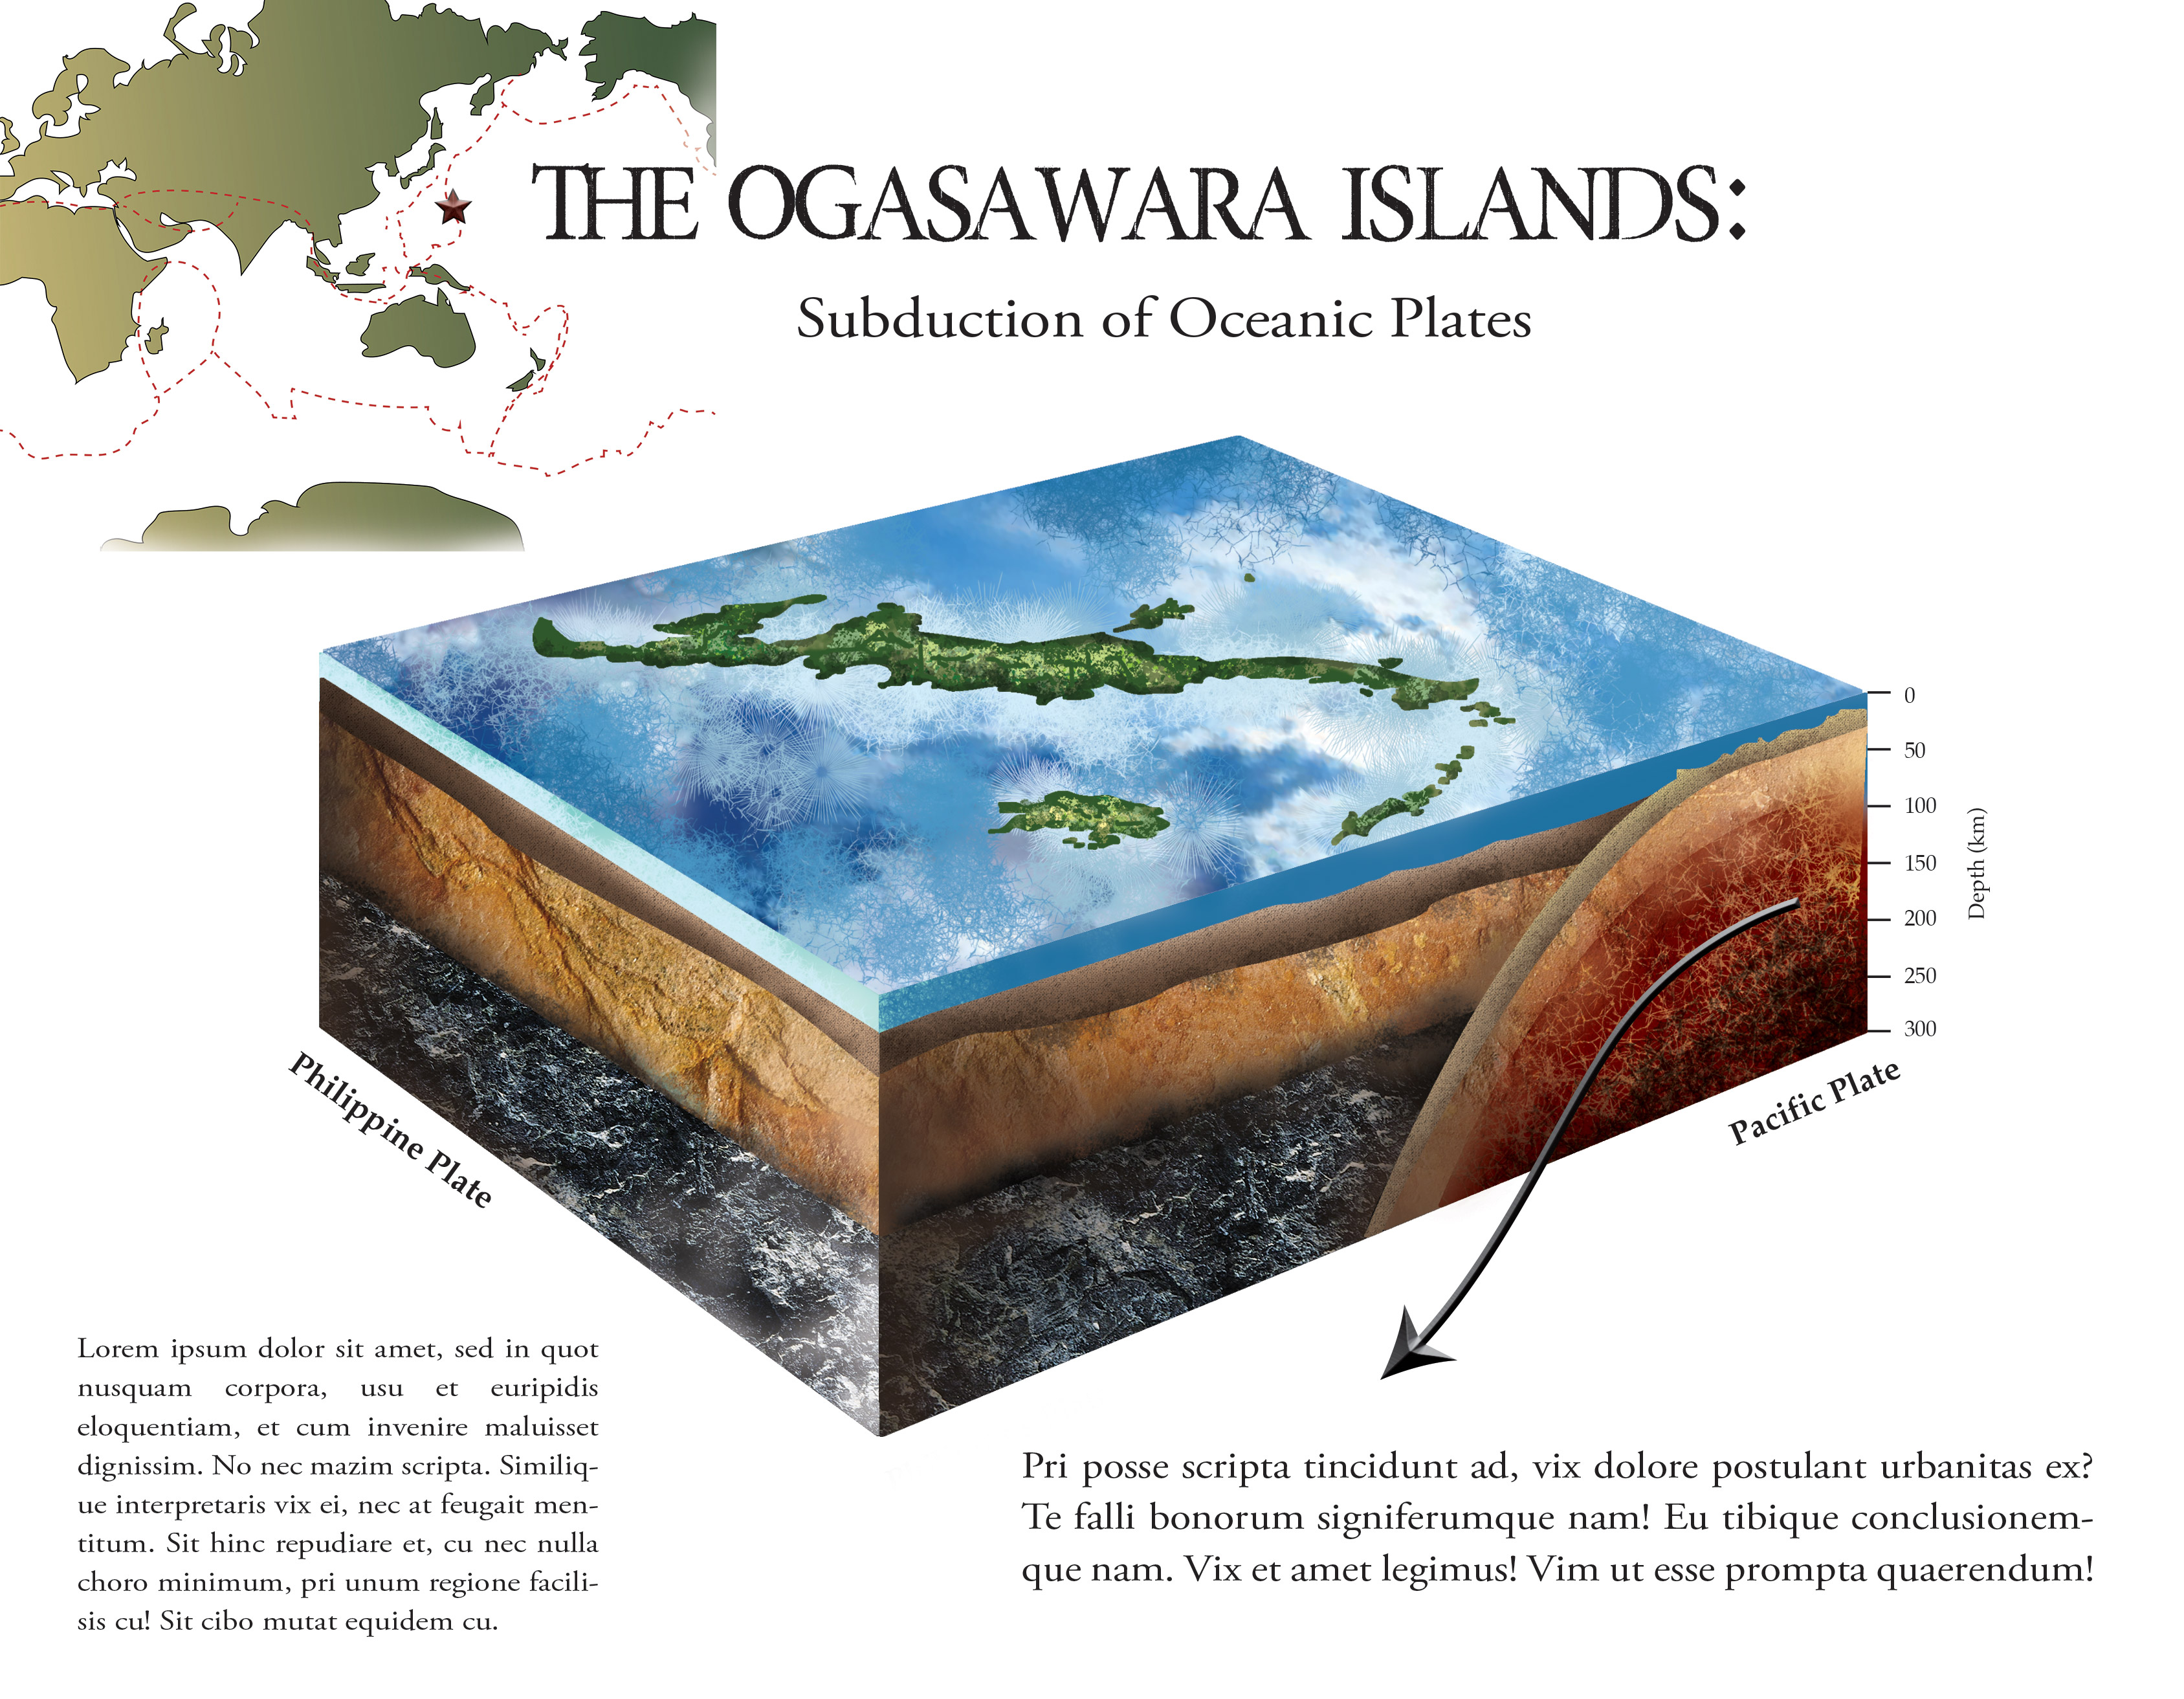 The Ogasawara Islands: Subduction of Oceanic Plates